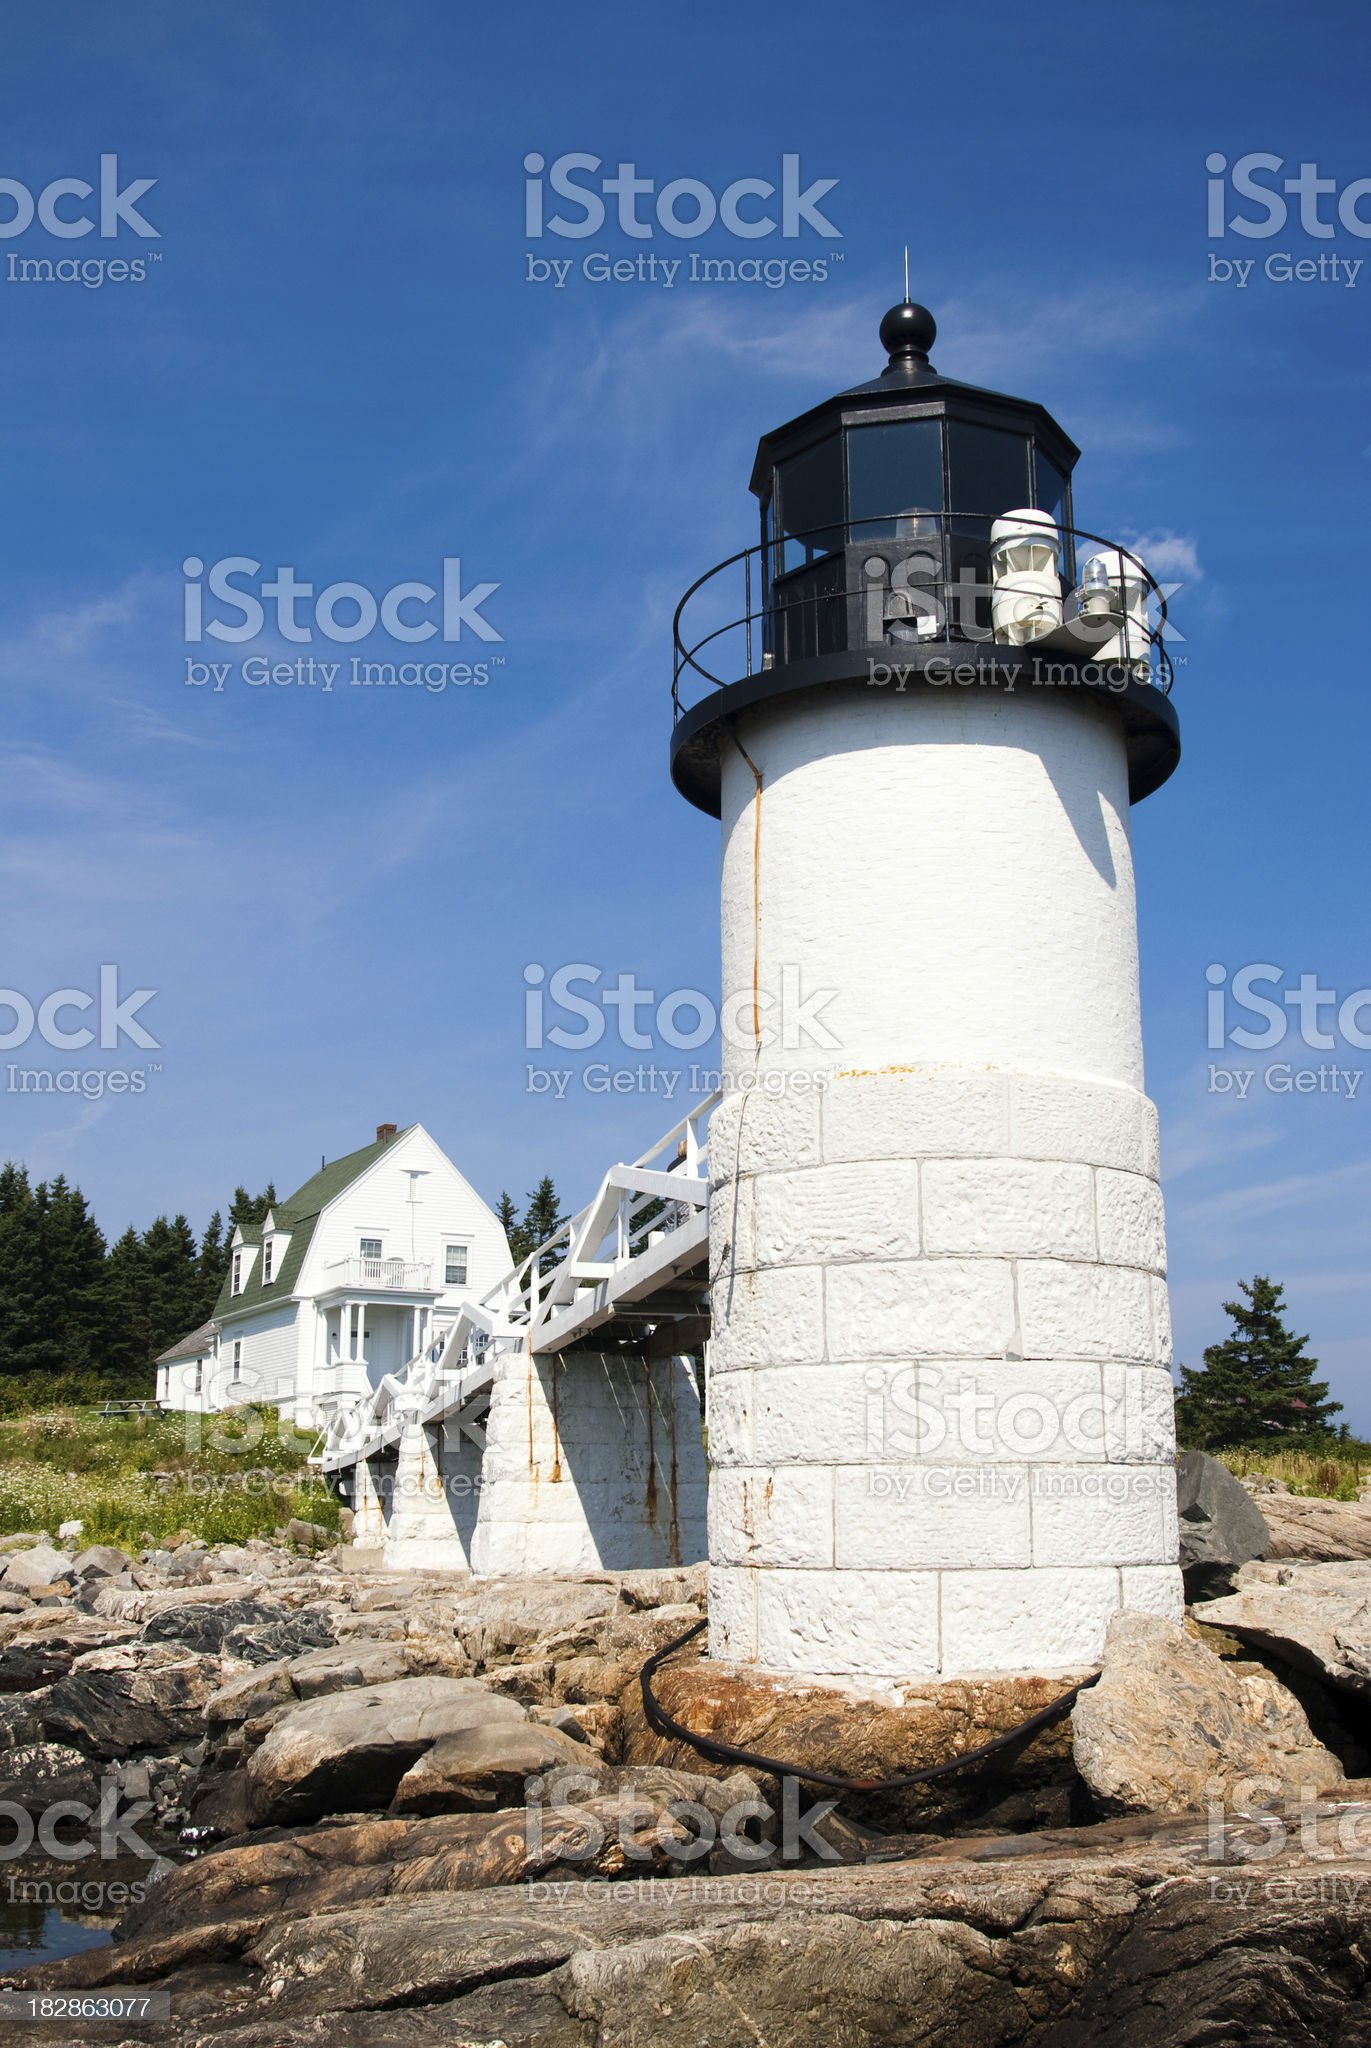 Marshall Point Light Station in Port Clyde, ME from rocks royalty-free stock photo